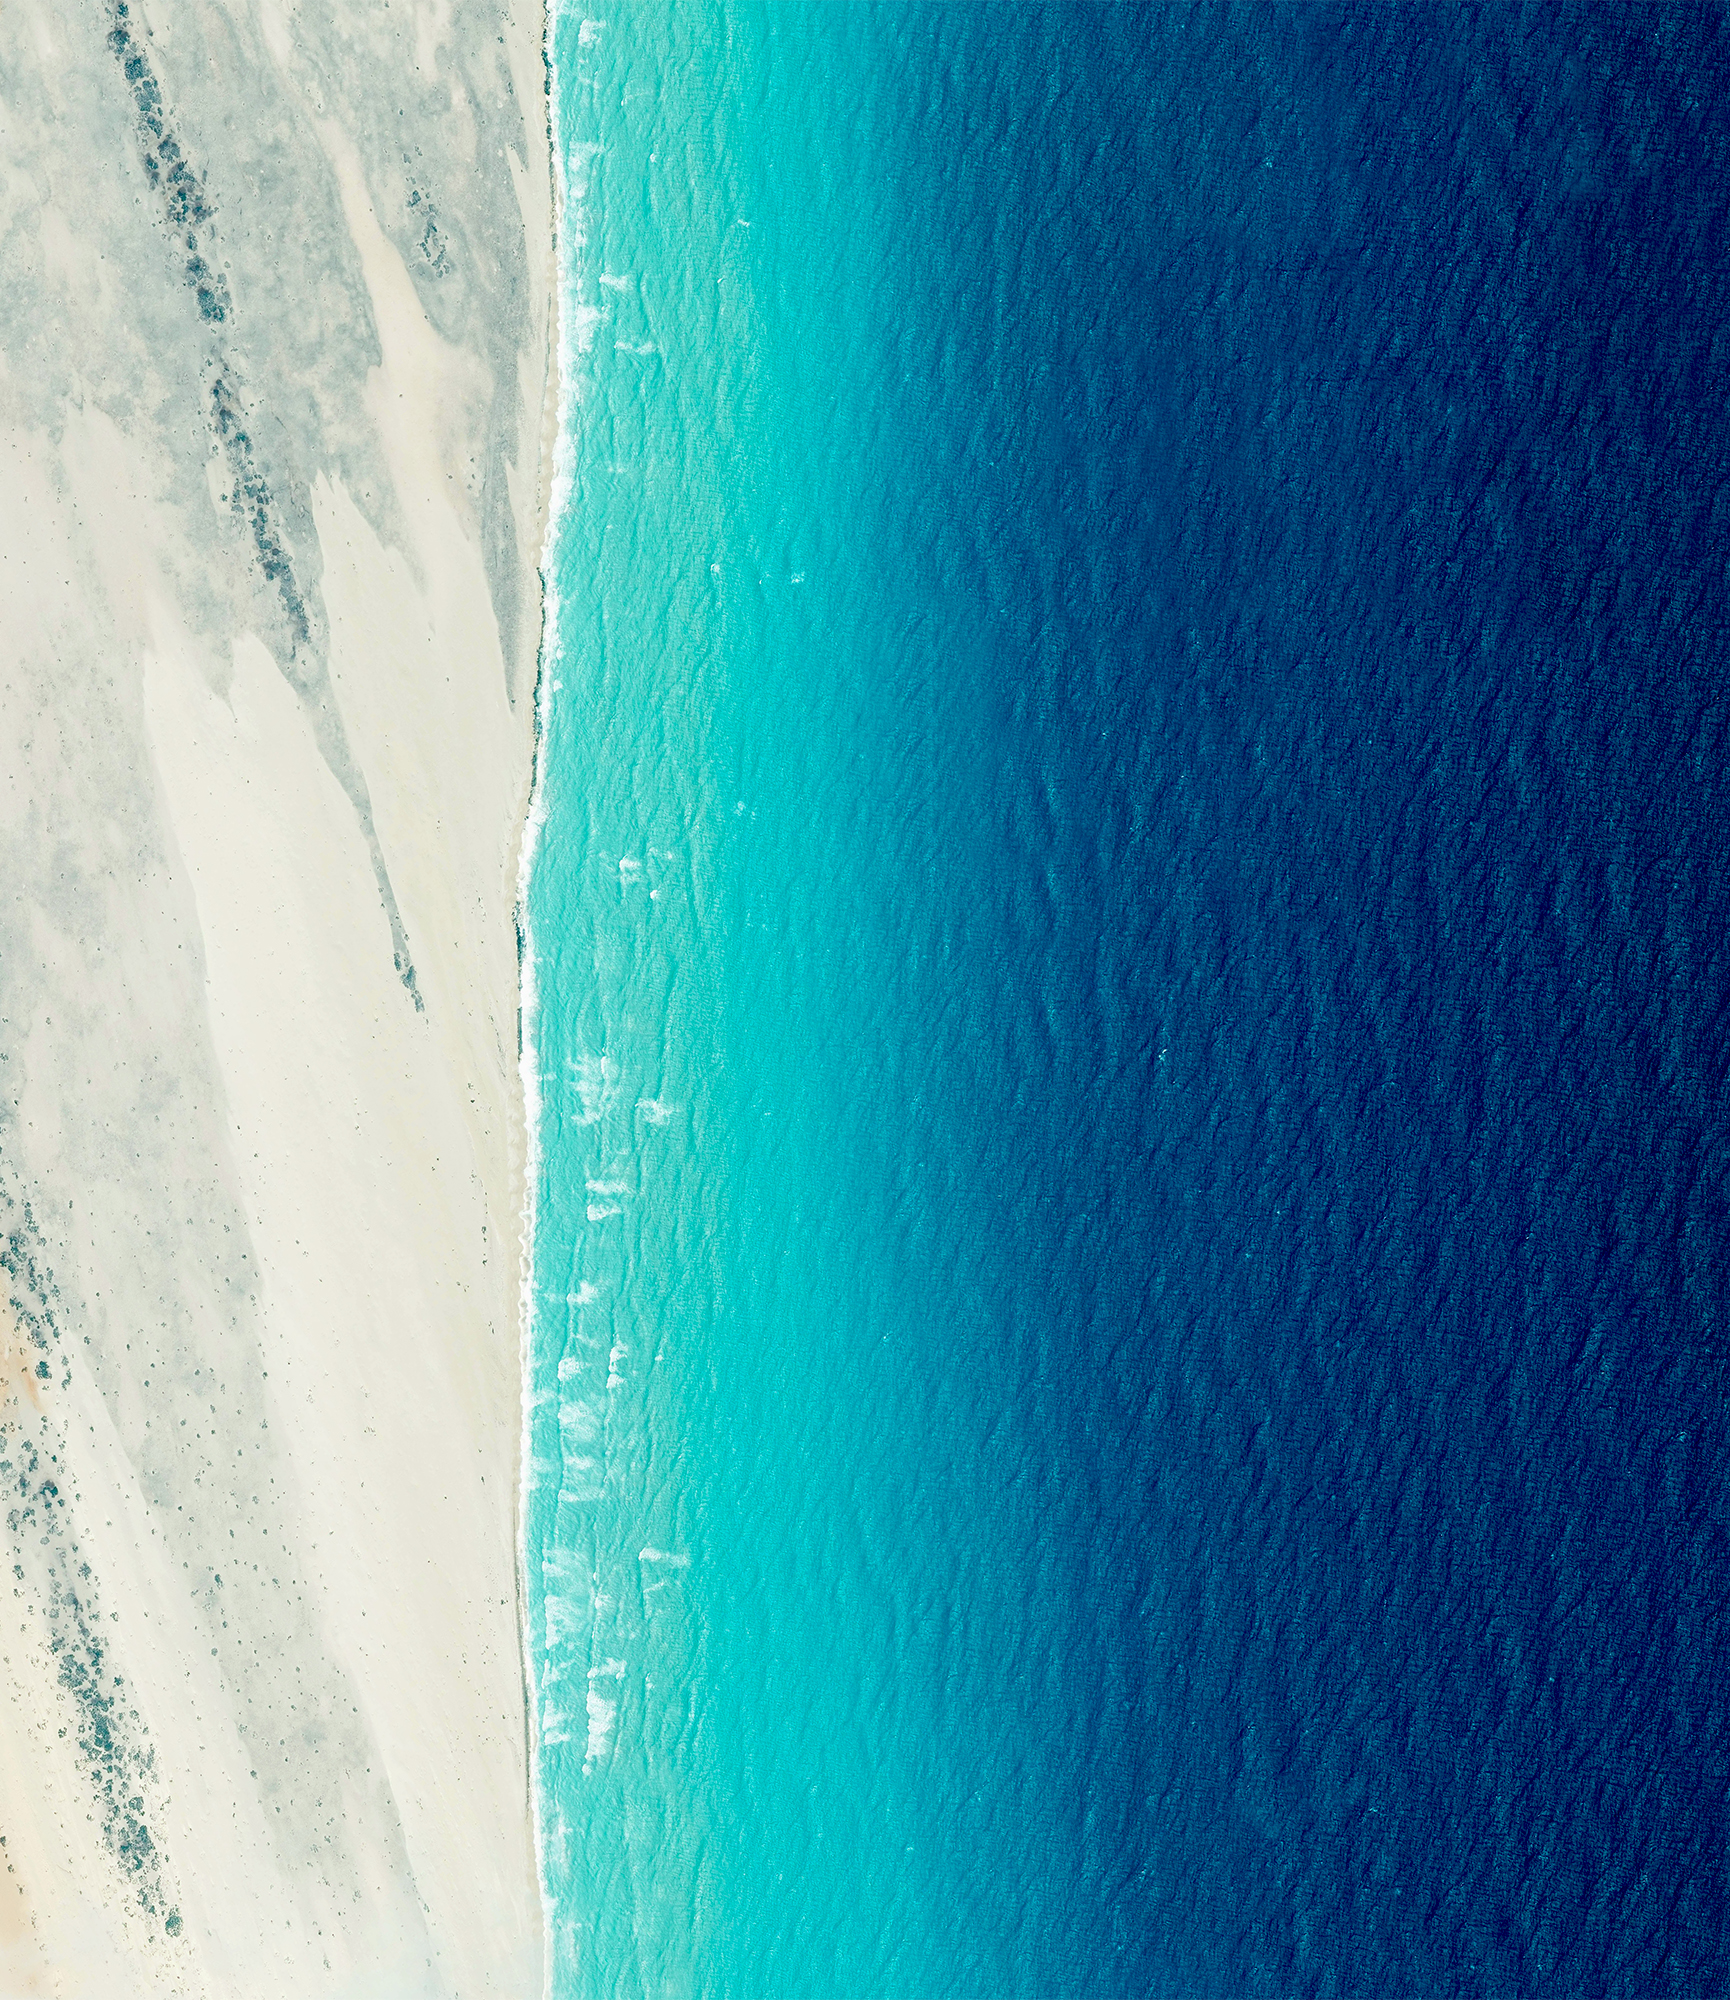 Waves roll into the shores of Somalia, by the village of El Hur. Located on the Horn of Africa, Somalia has the longest coastline on the mainland continent, stretching for more than 3,000 kilometers (1880 miles).  5°00′N 48°16′E